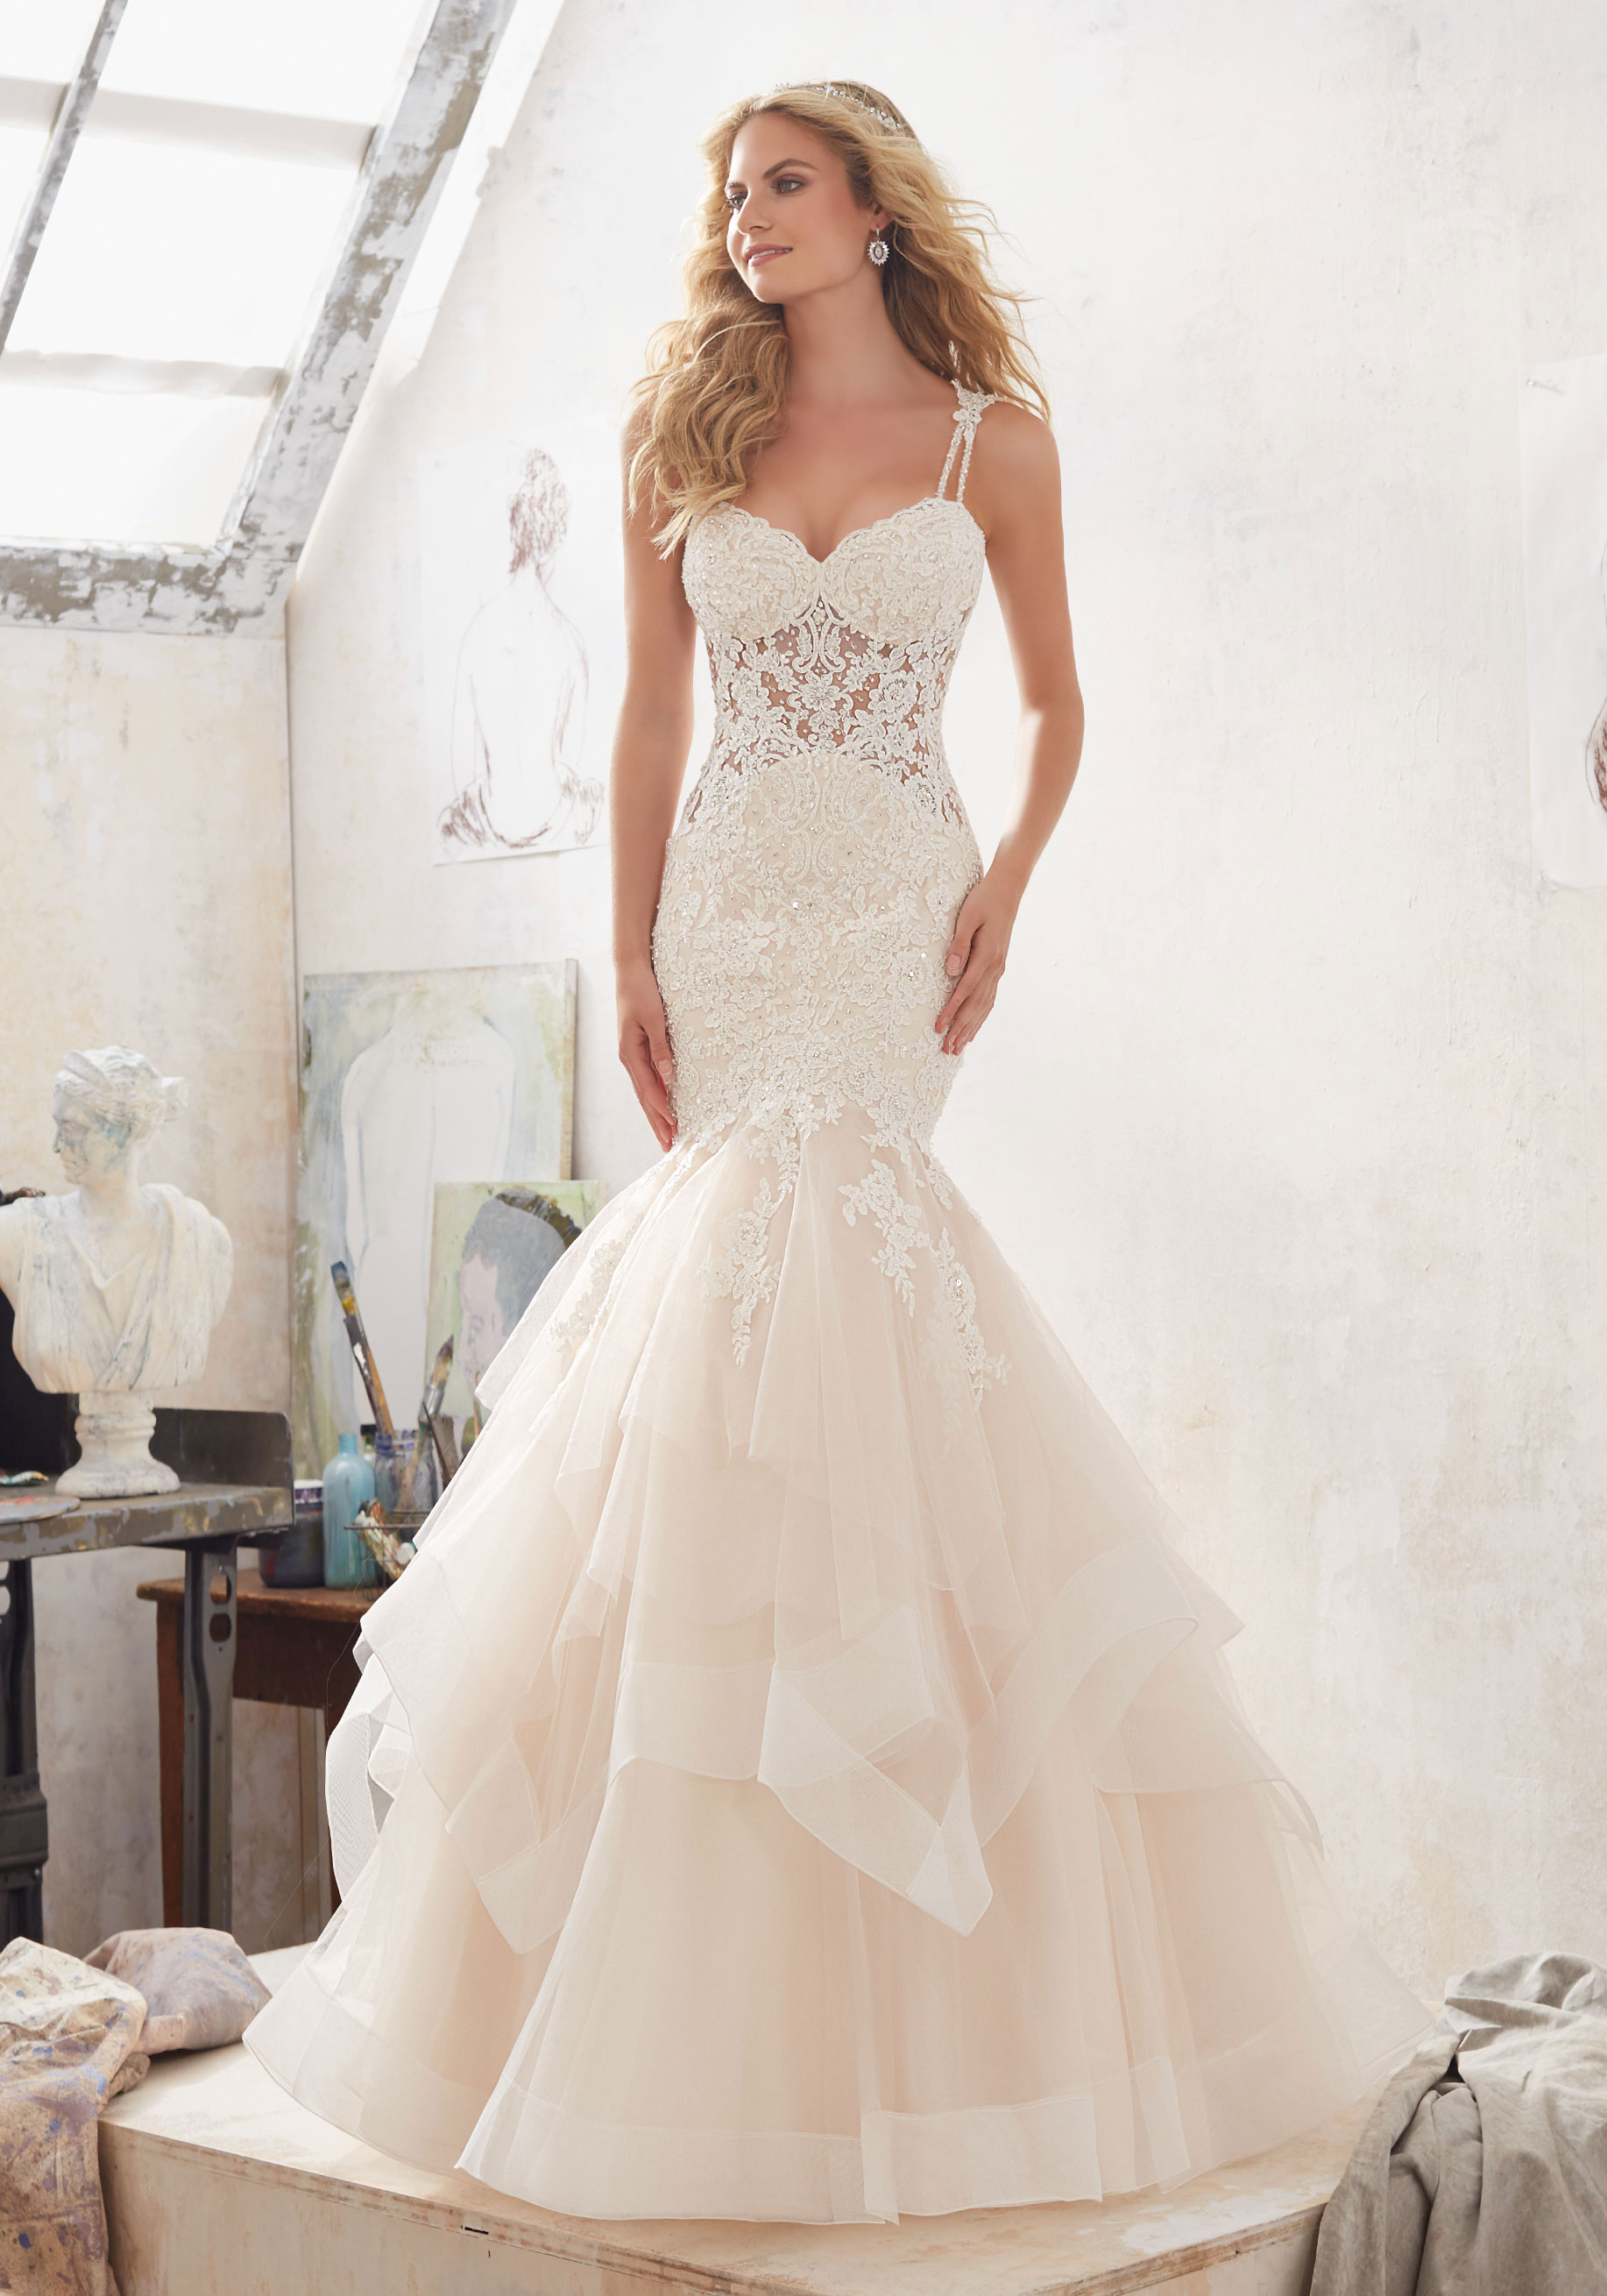 mori lee wedding dresses marciela wedding dress gmnwwrf